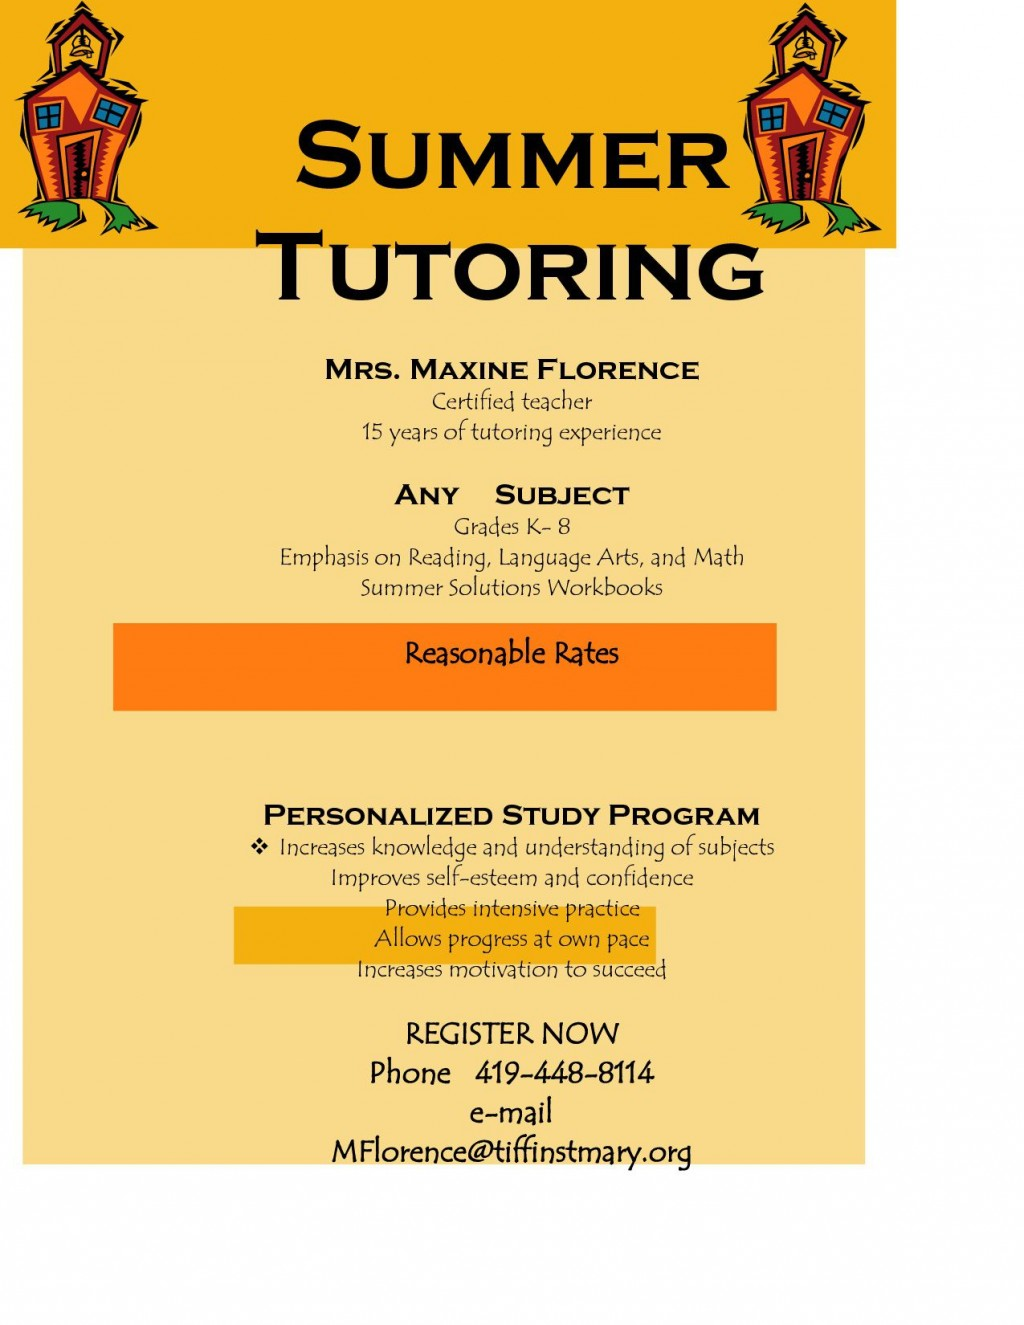 008 Stupendou Tutoring Flyer Template Free Concept  Word MathLarge